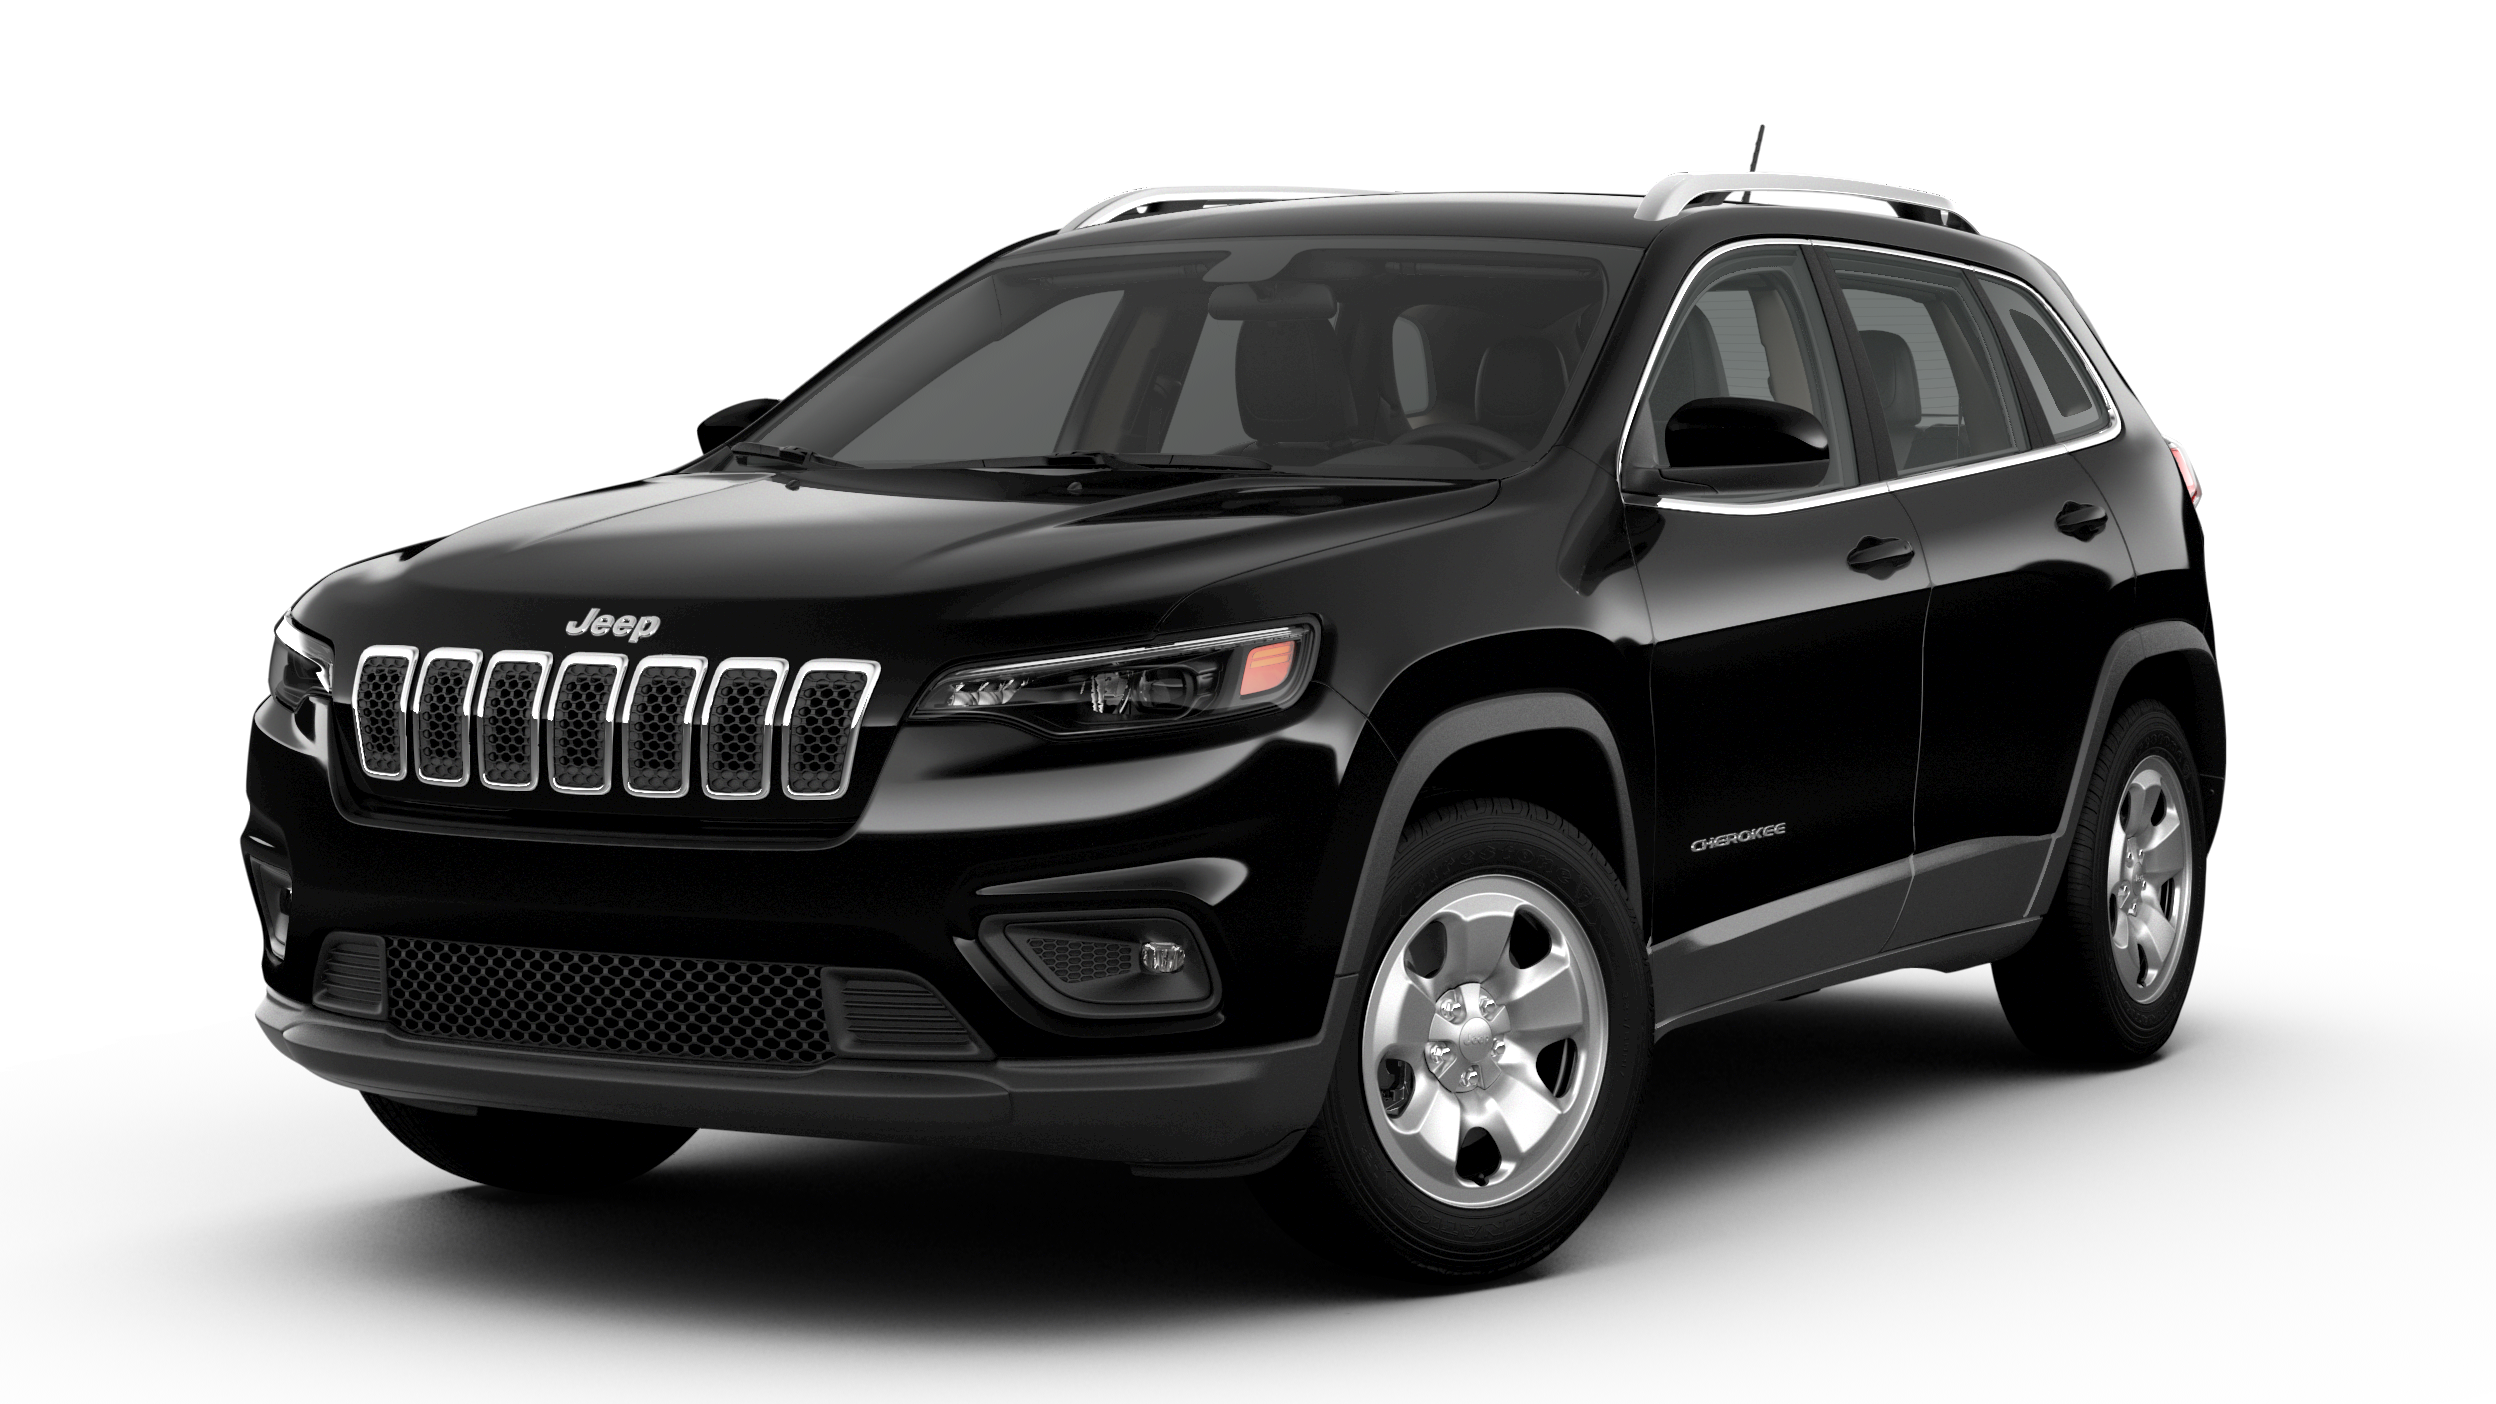 2021 Jeep Cherokee Lat Lux